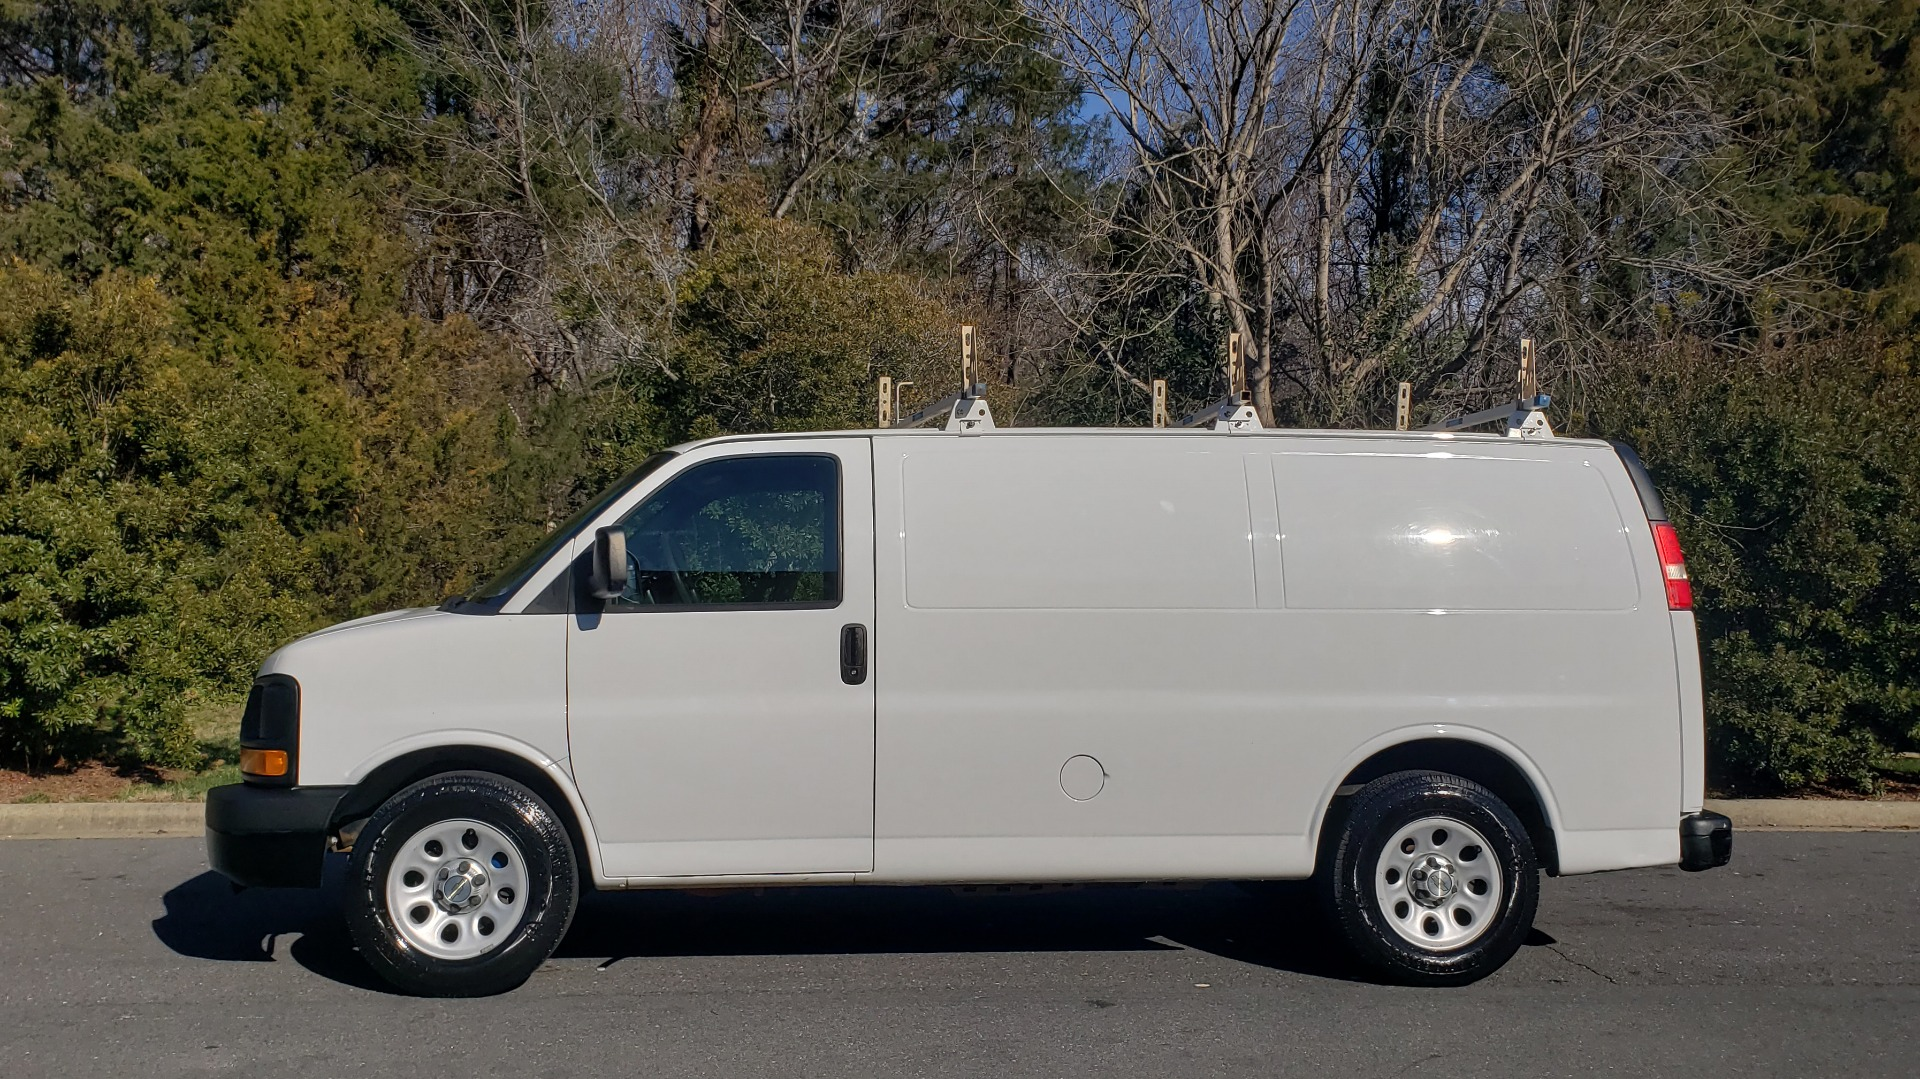 Used 2012 Chevrolet EXPRESS WORK VAN 1500 / 135 WB / 4.3L V6 / 4-SPD AUTO / ROOF RACK for sale $11,600 at Formula Imports in Charlotte NC 28227 2